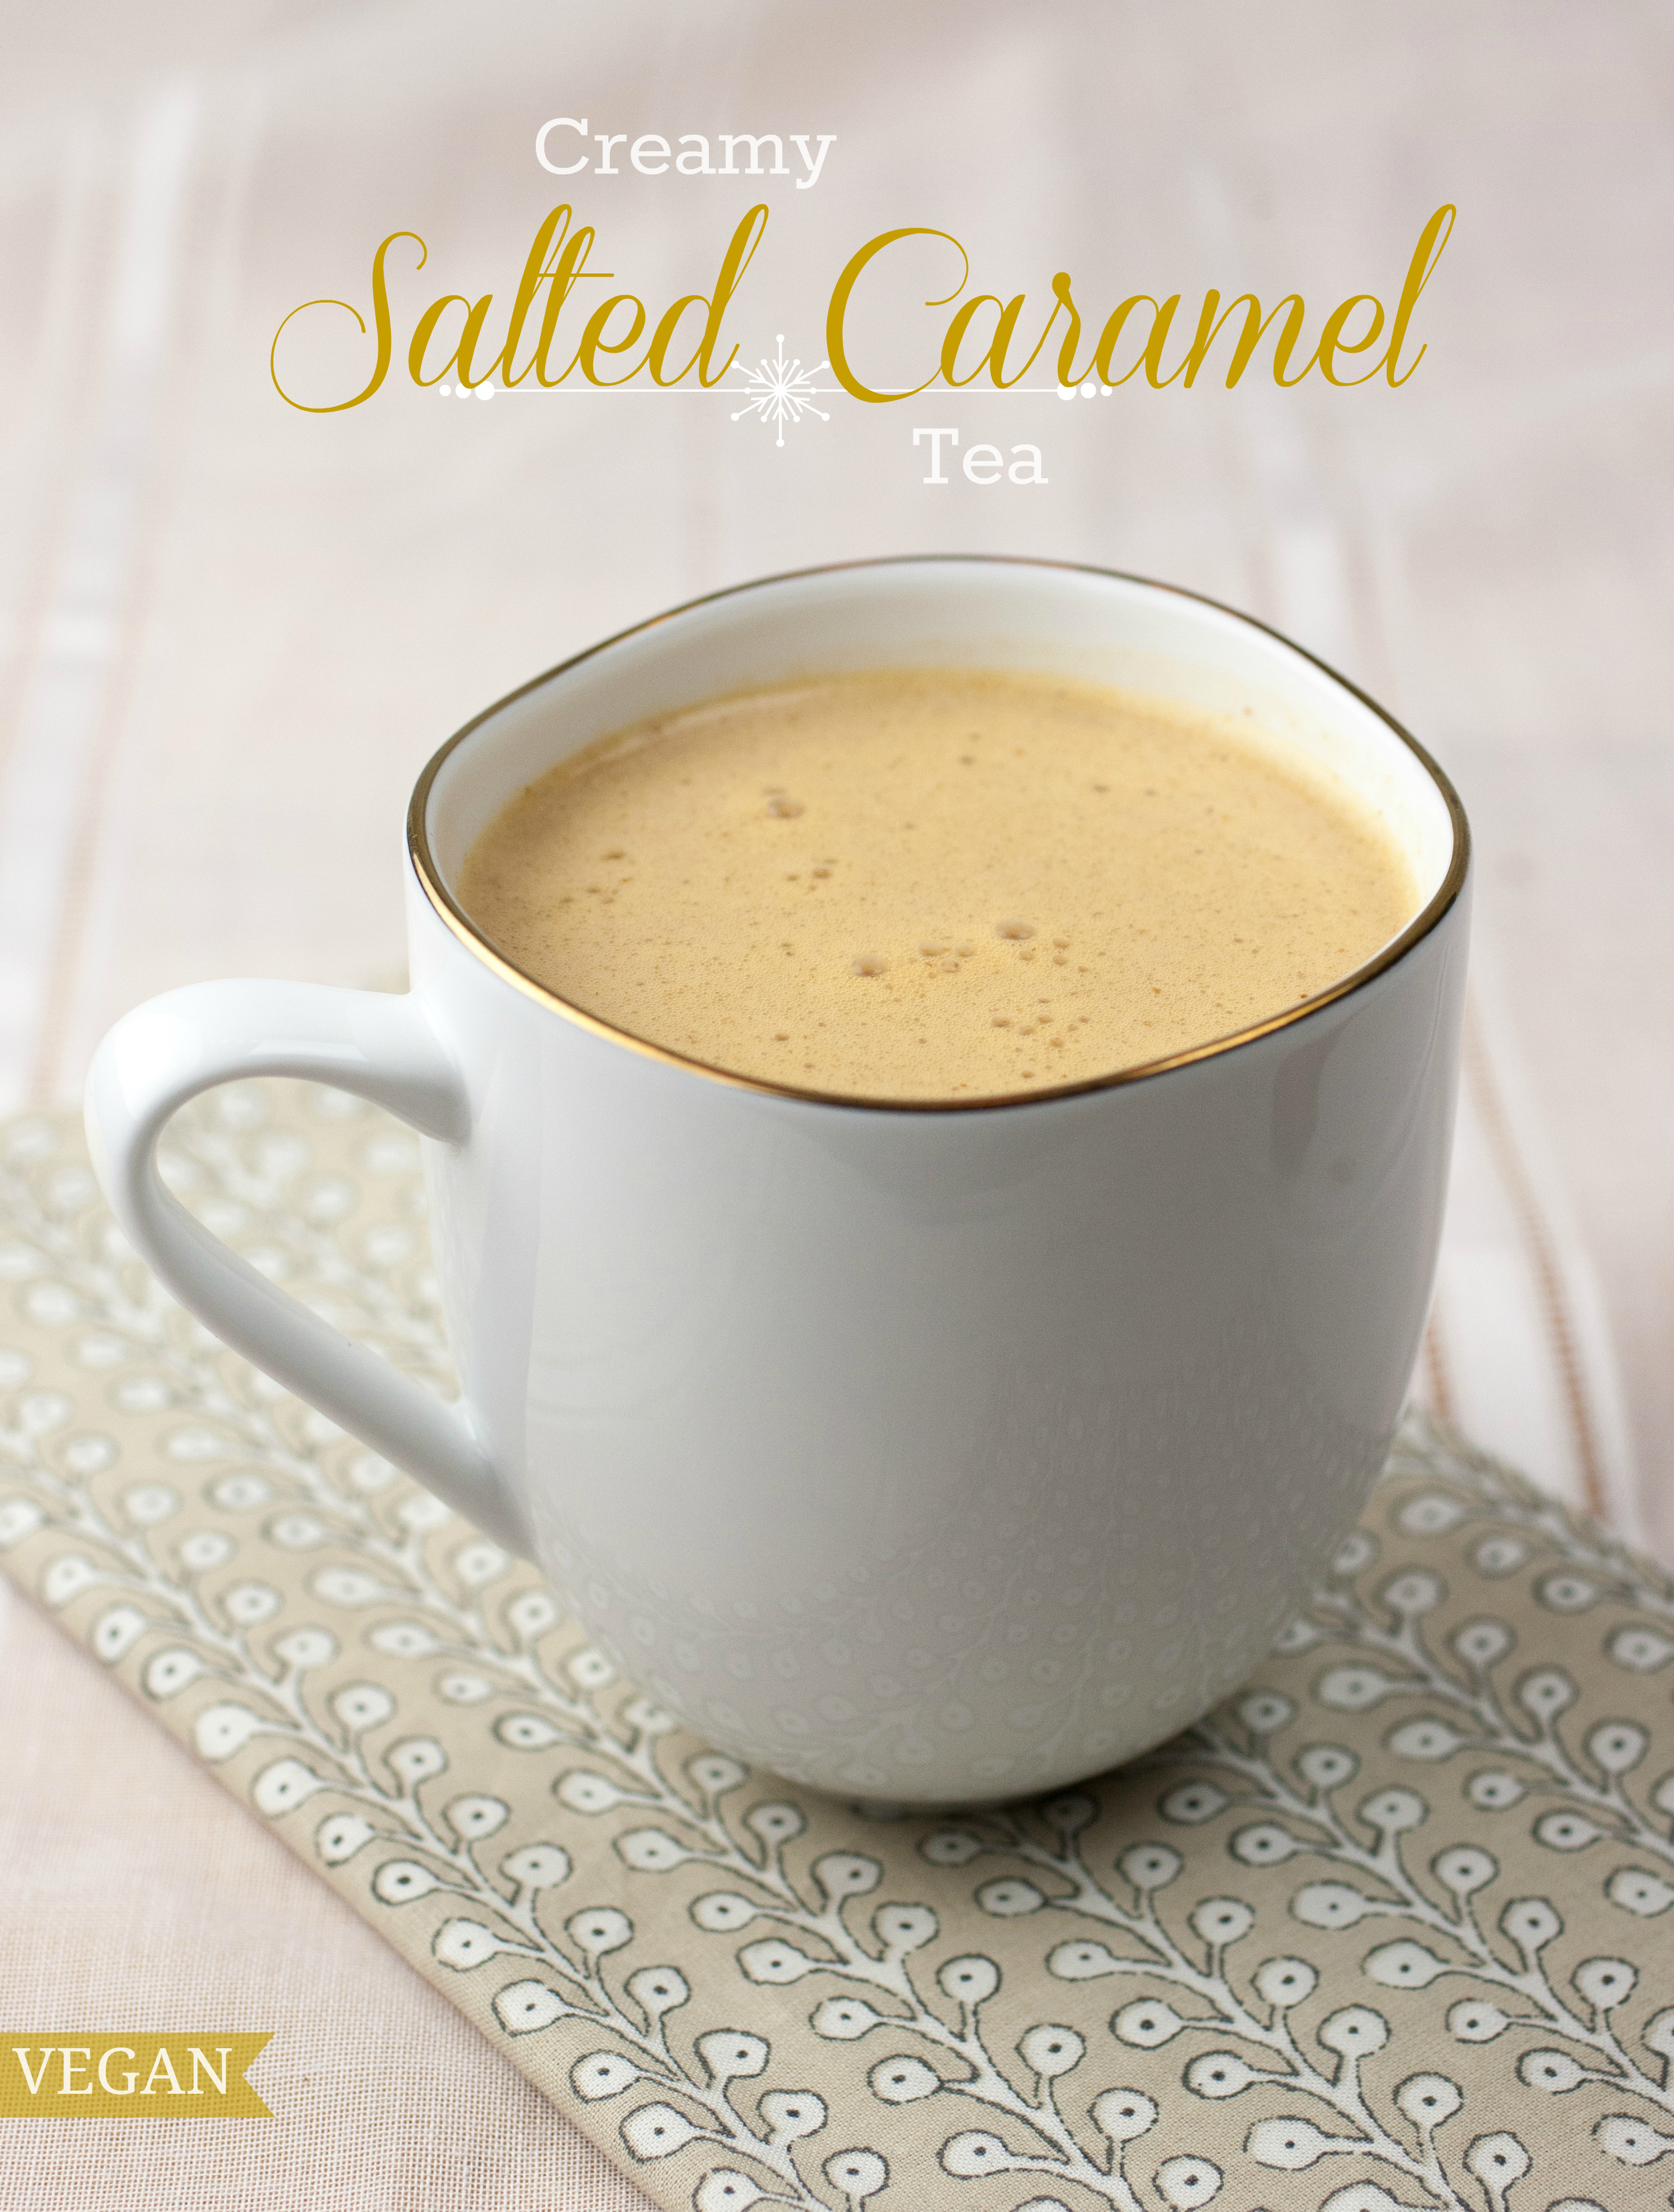 Produce On Parade - Creamy Salted Caramel Tea